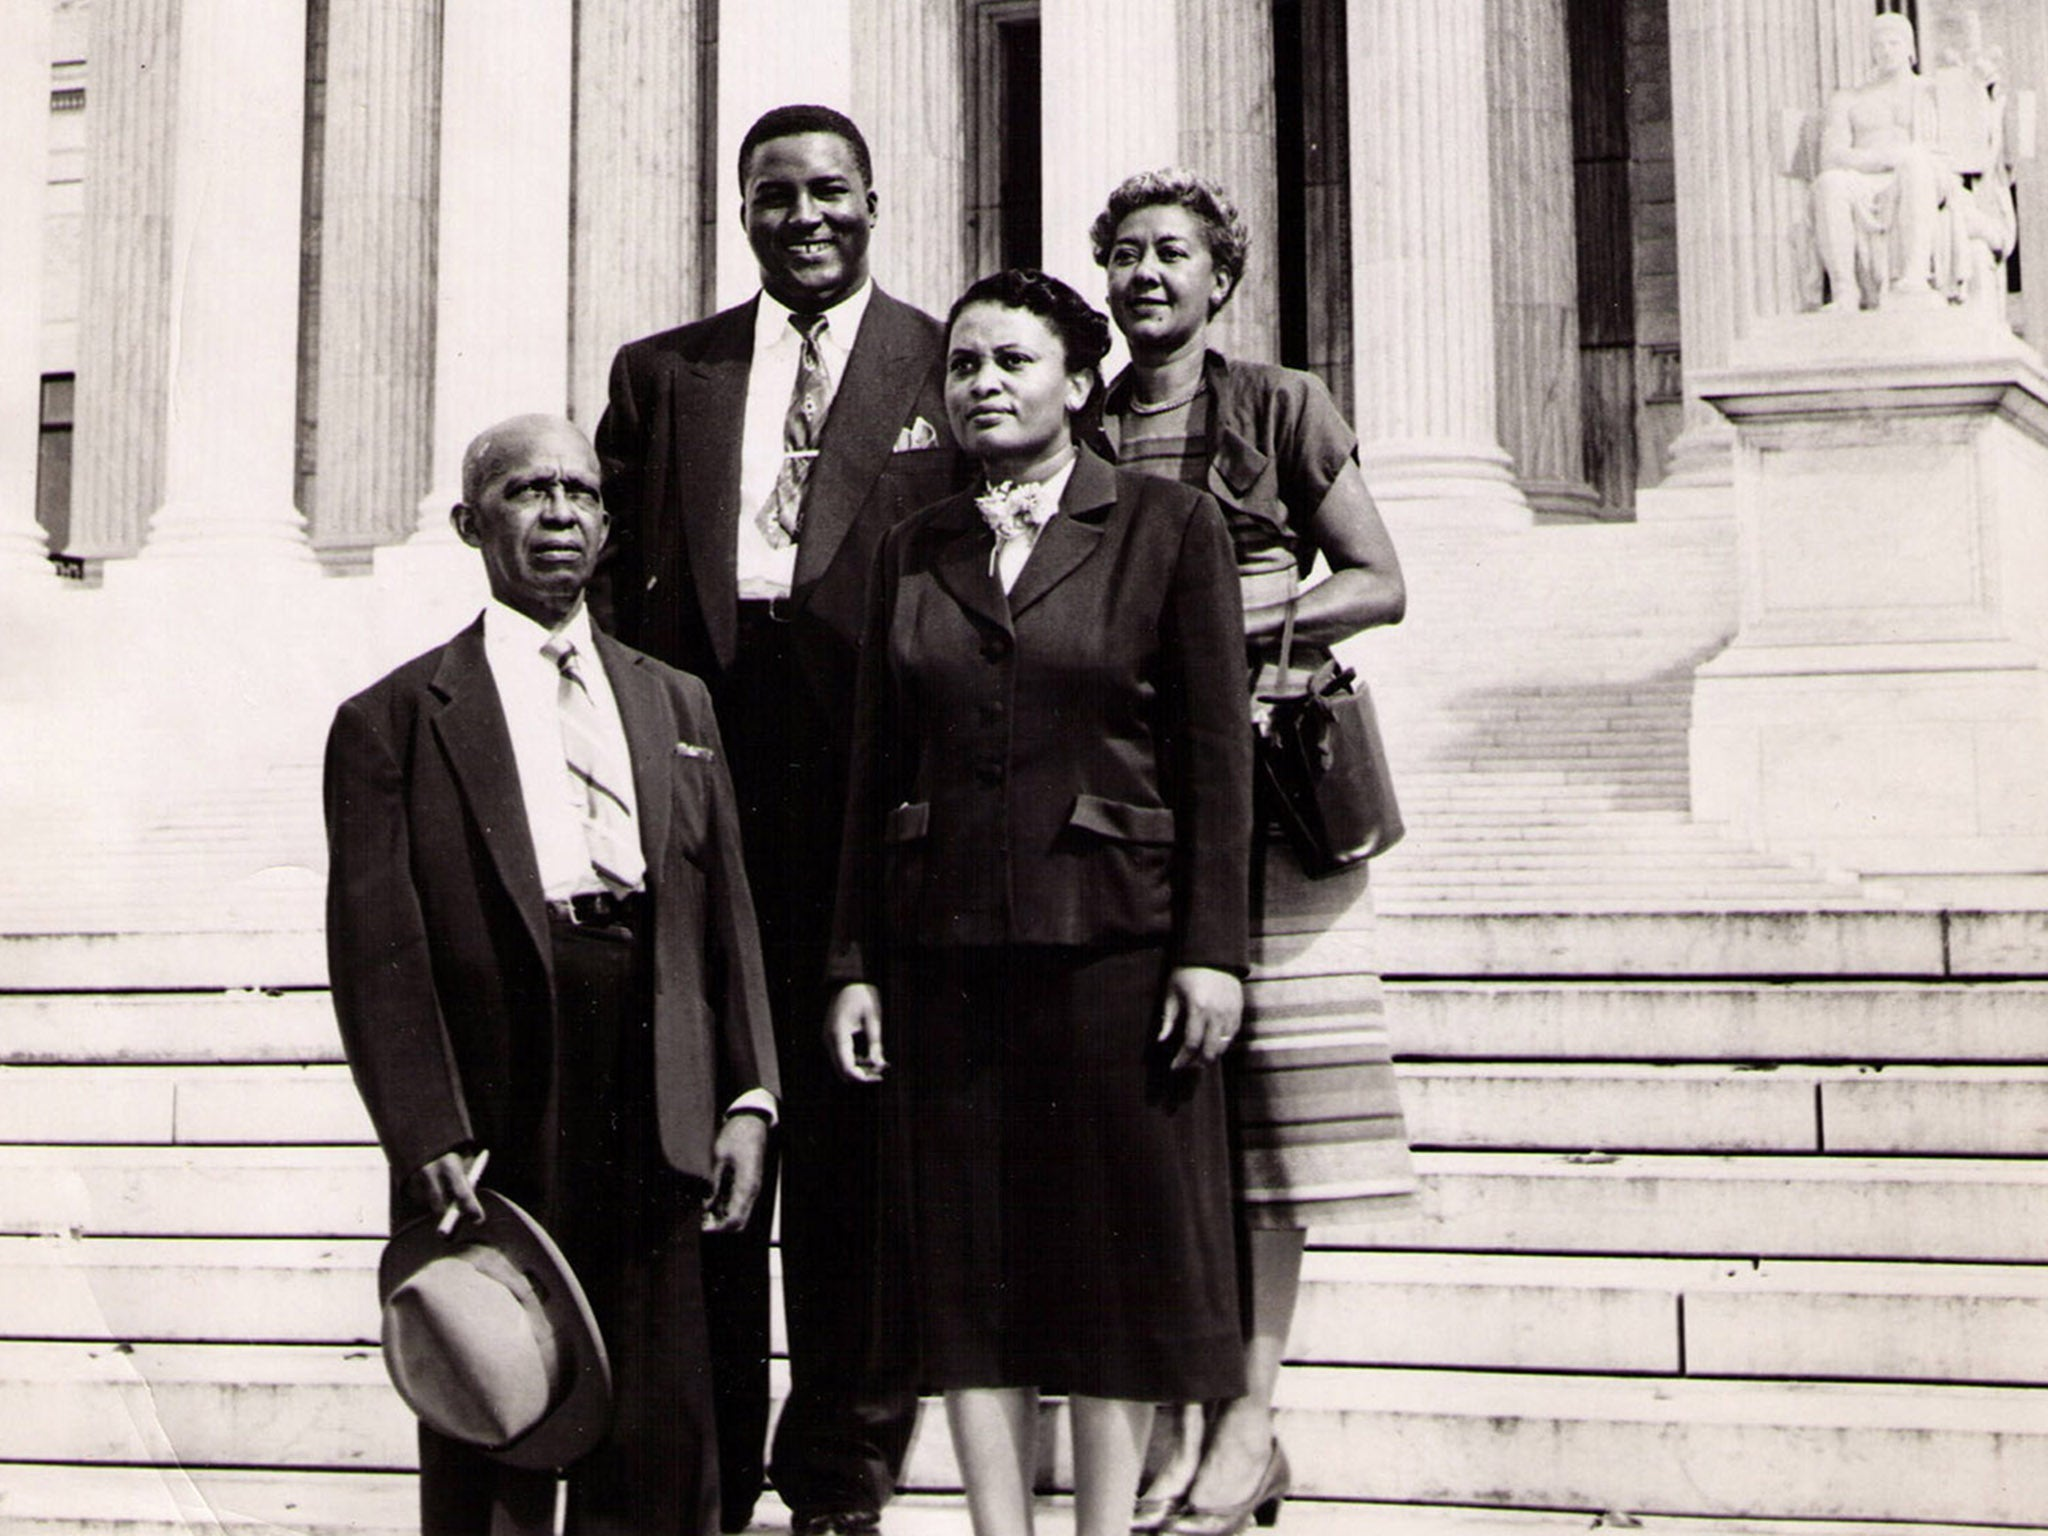 e65ca1c0ff Dovey Johnson Roundtree: Lawyer who blazed a trail for African-Americans  and women during segregation | The Independent